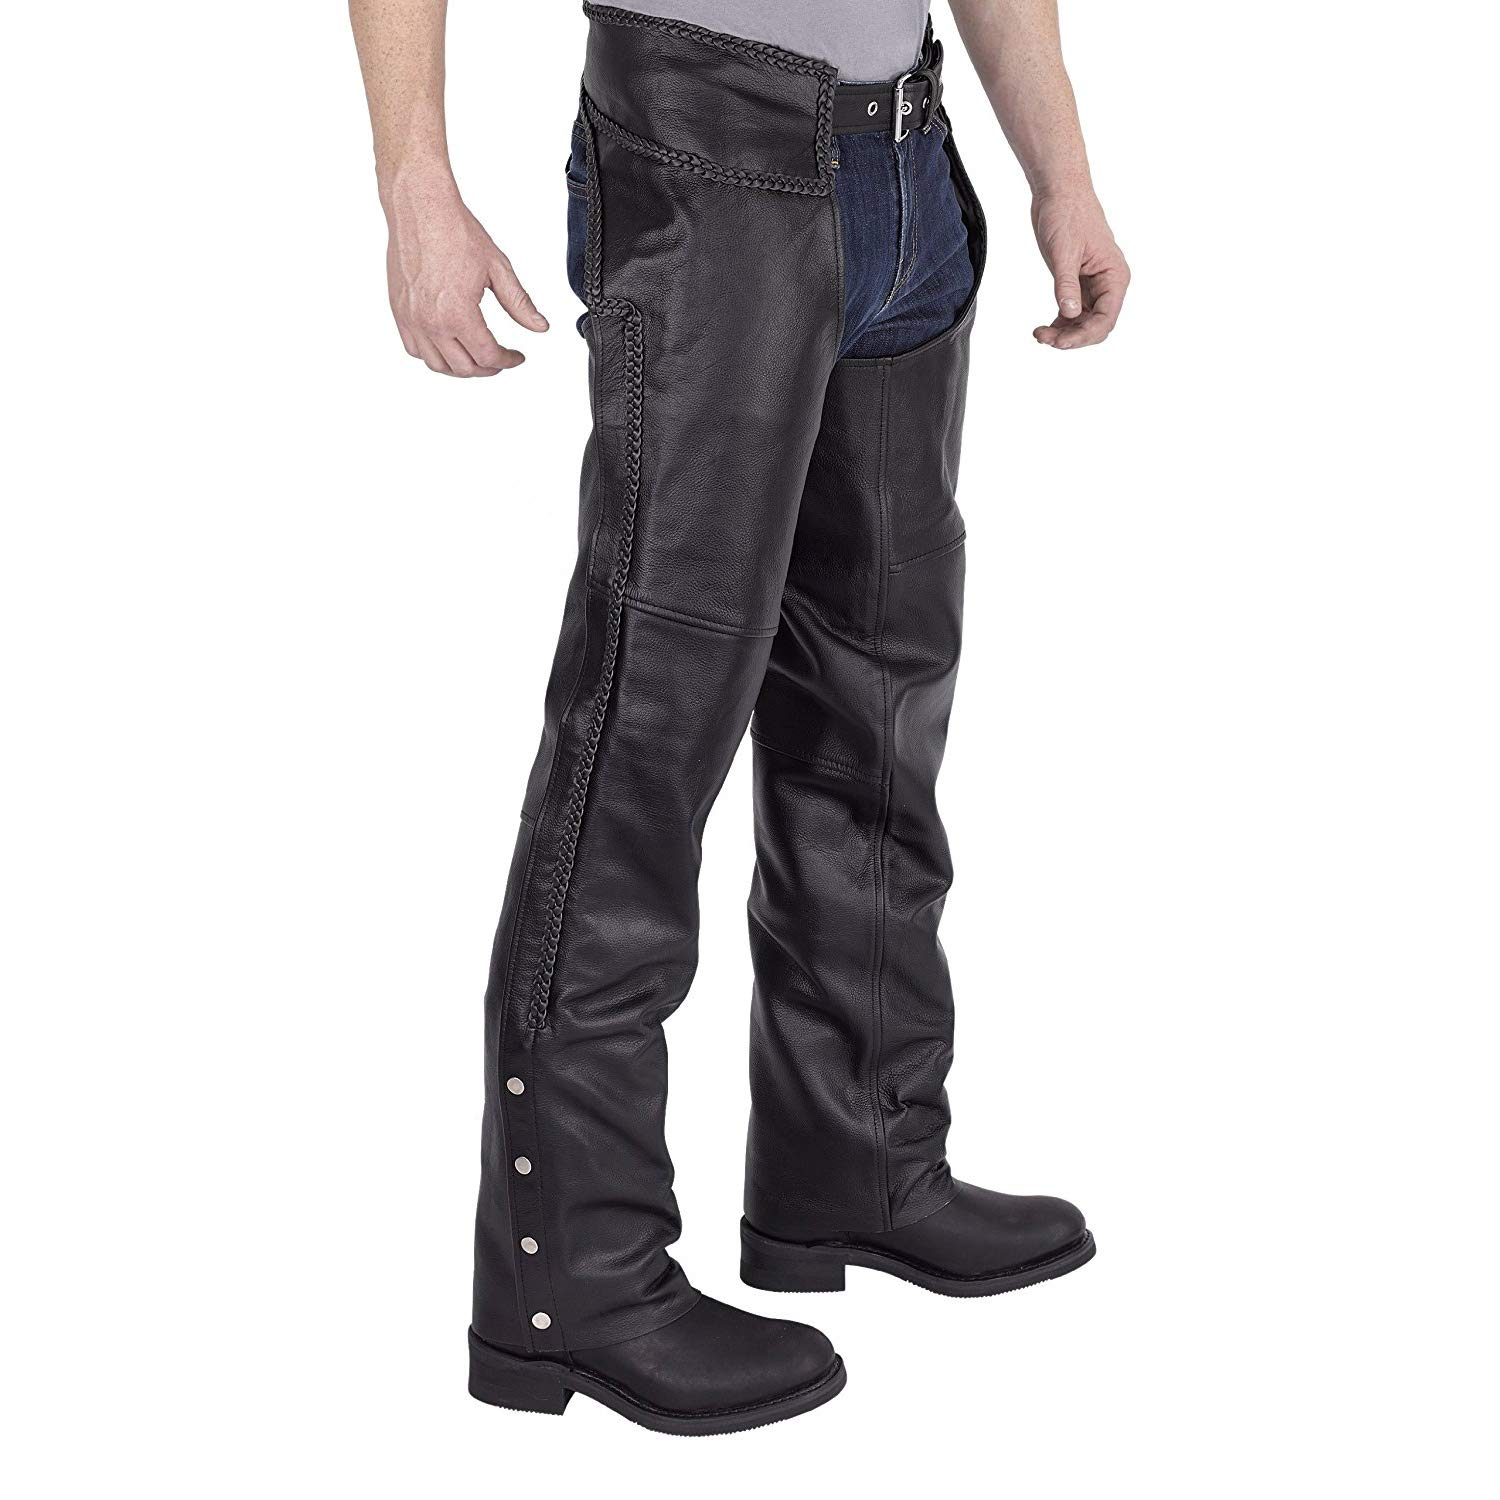 Viking Cycle Leather Chaps - Braided Motorcycle Leather Chaps (4X-Large) Black by Viking Cycle